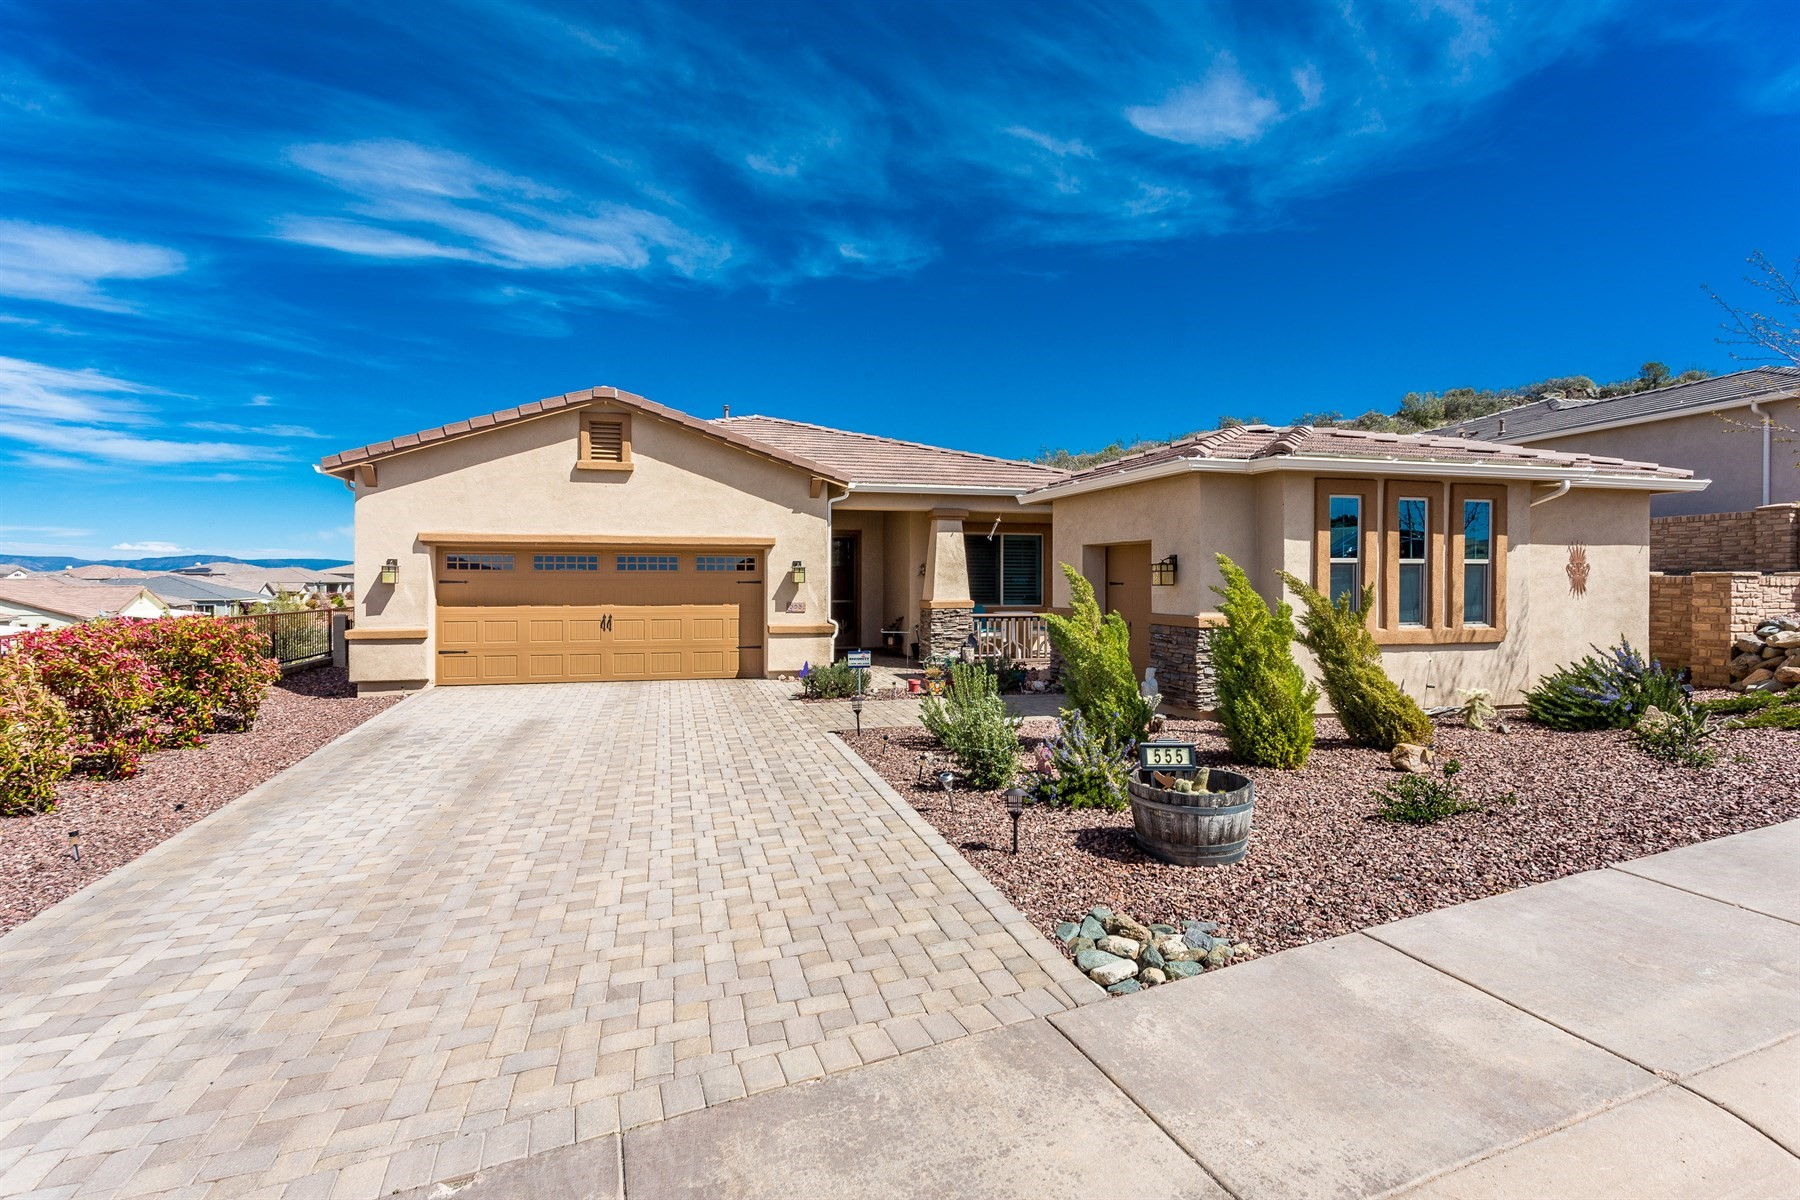 Moradia para Venda às Beautiful single story Prescott home 555 Tawny Drive Prescott, Arizona, 86301 Estados Unidos